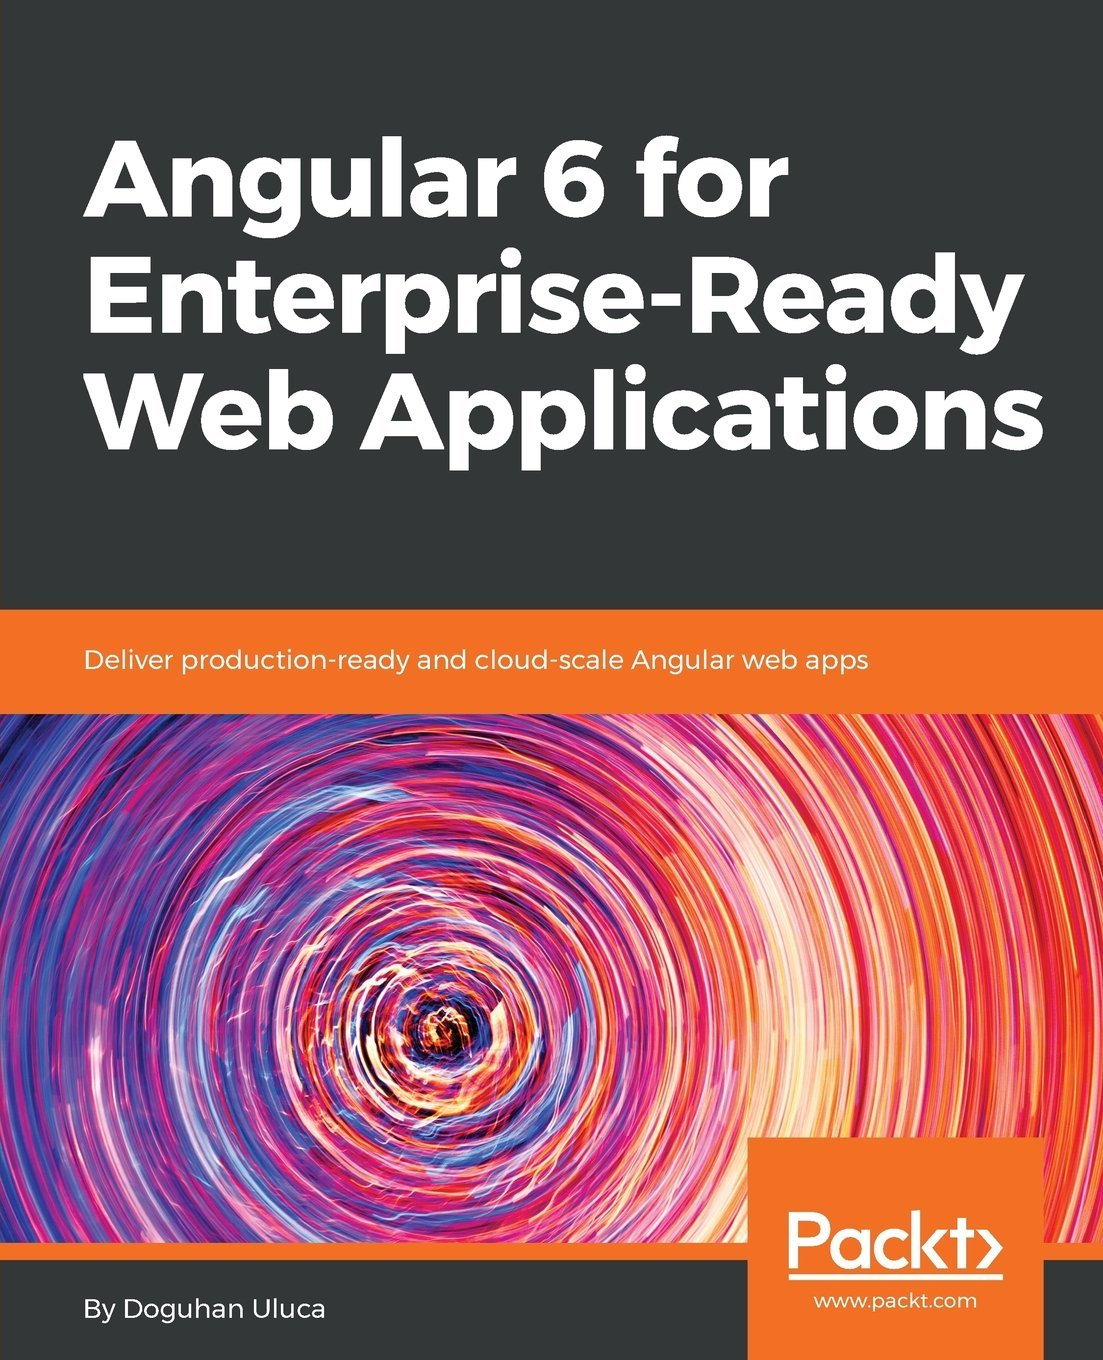 Angular 6 for Enterprise-Ready Web Applications: Deliver